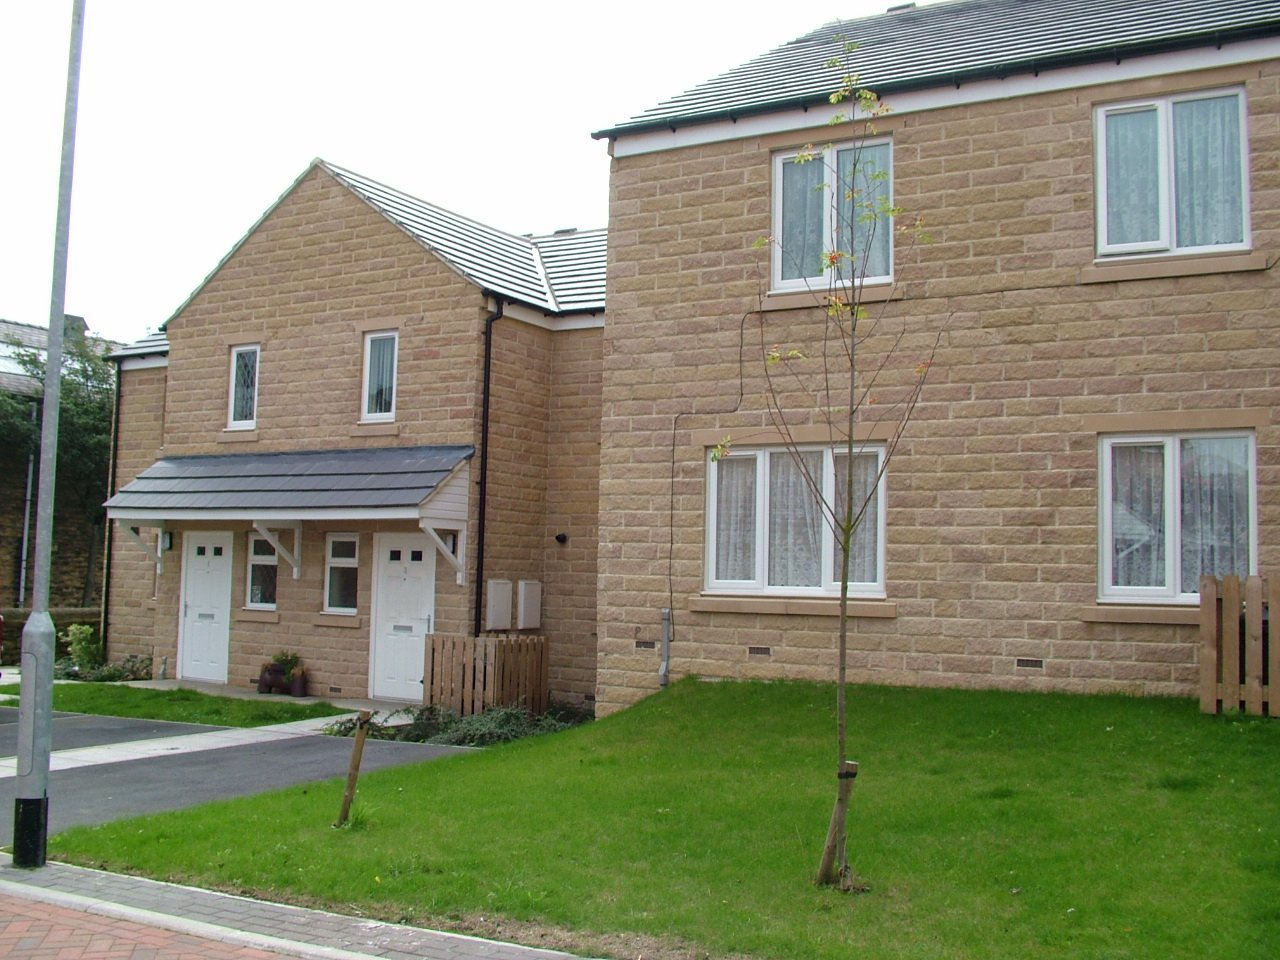 Detached houses built 'Labour Only' at West Holme Road for Southdale Homes